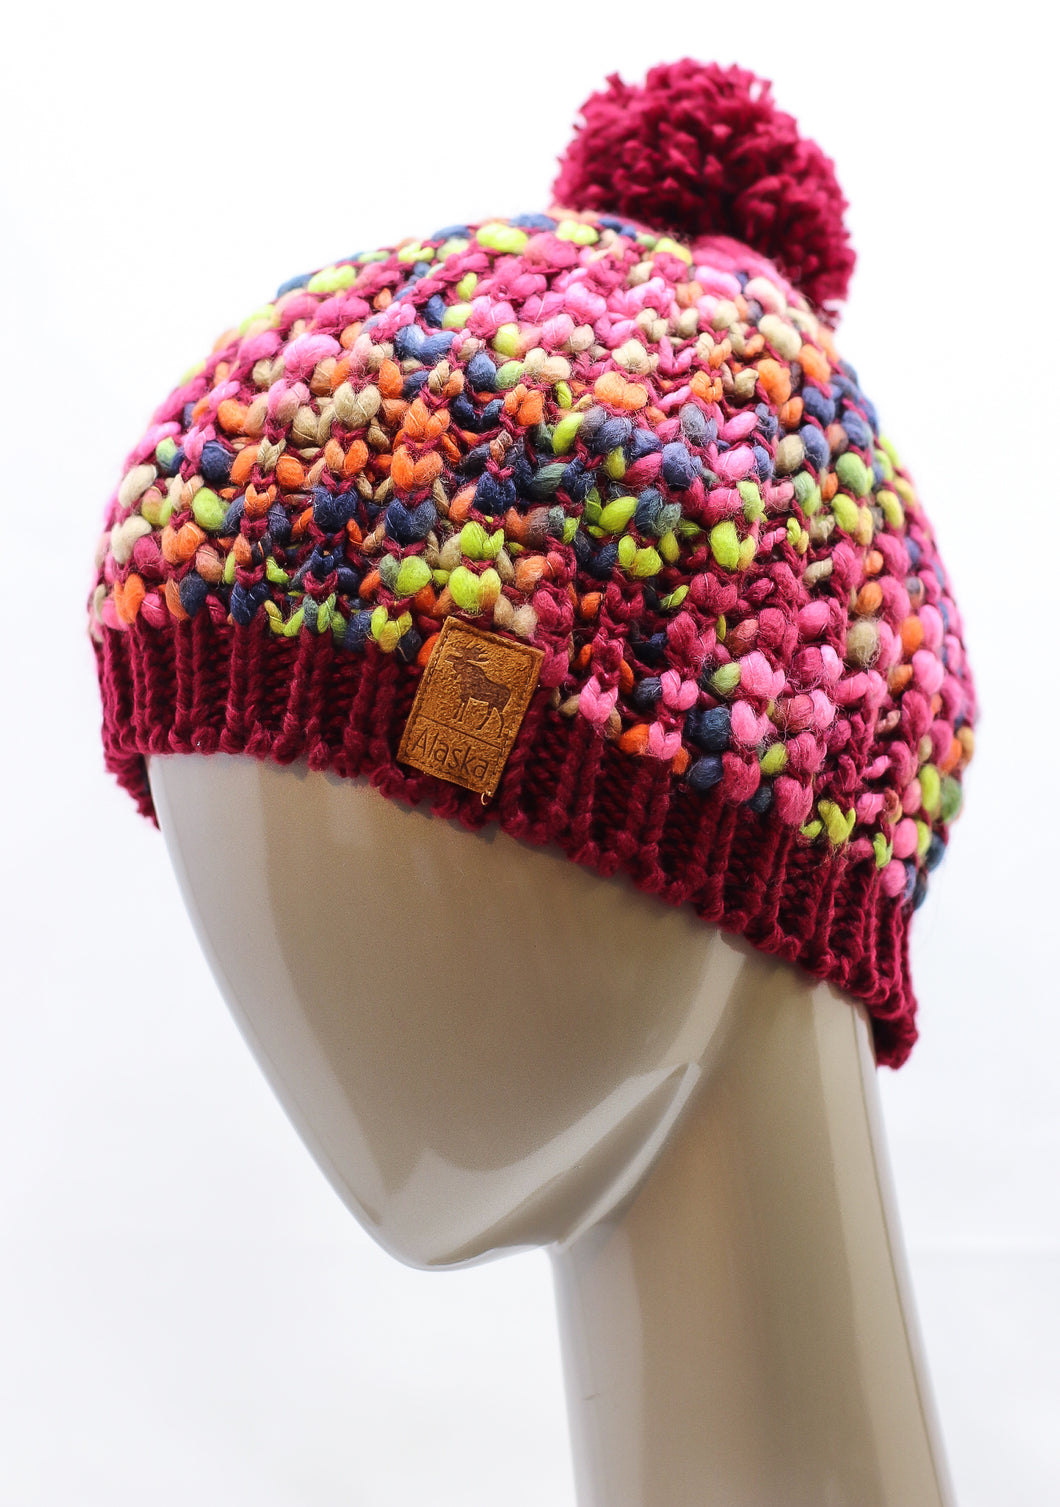 MULTI-COLORED KNITTED HAT WITH POM-POM